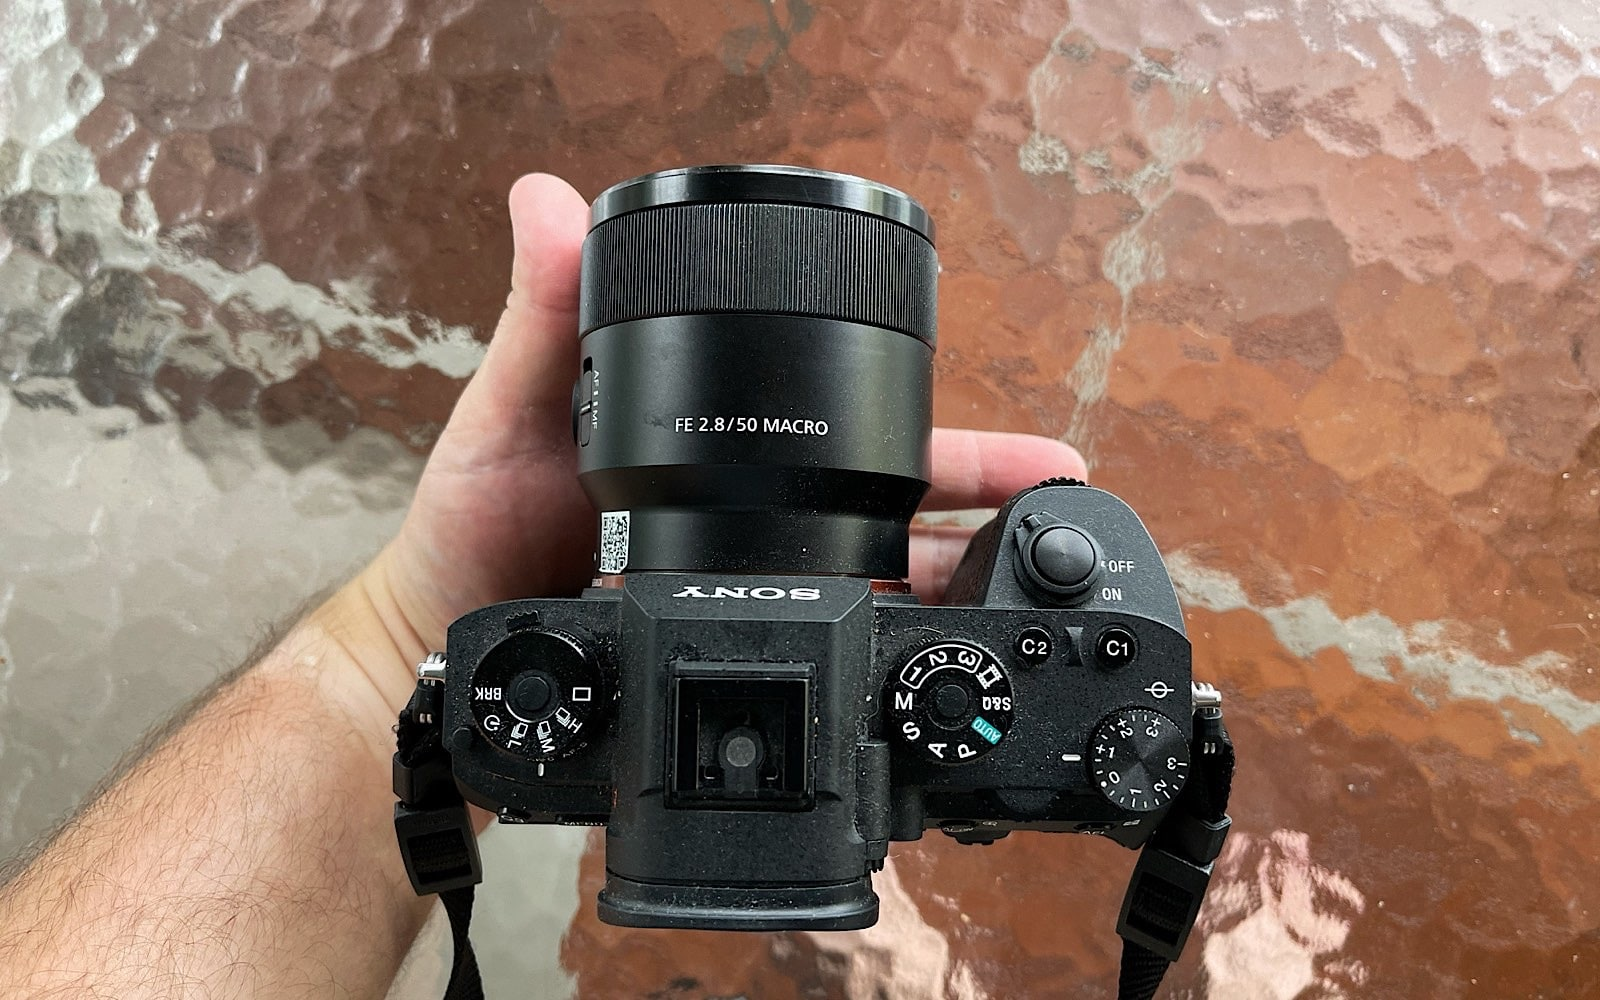 With your palm laying flat, place the camera in it, resting the lens against your thumb and the grip in your fingers. The edge of the camera should line up to the edge of your hand.